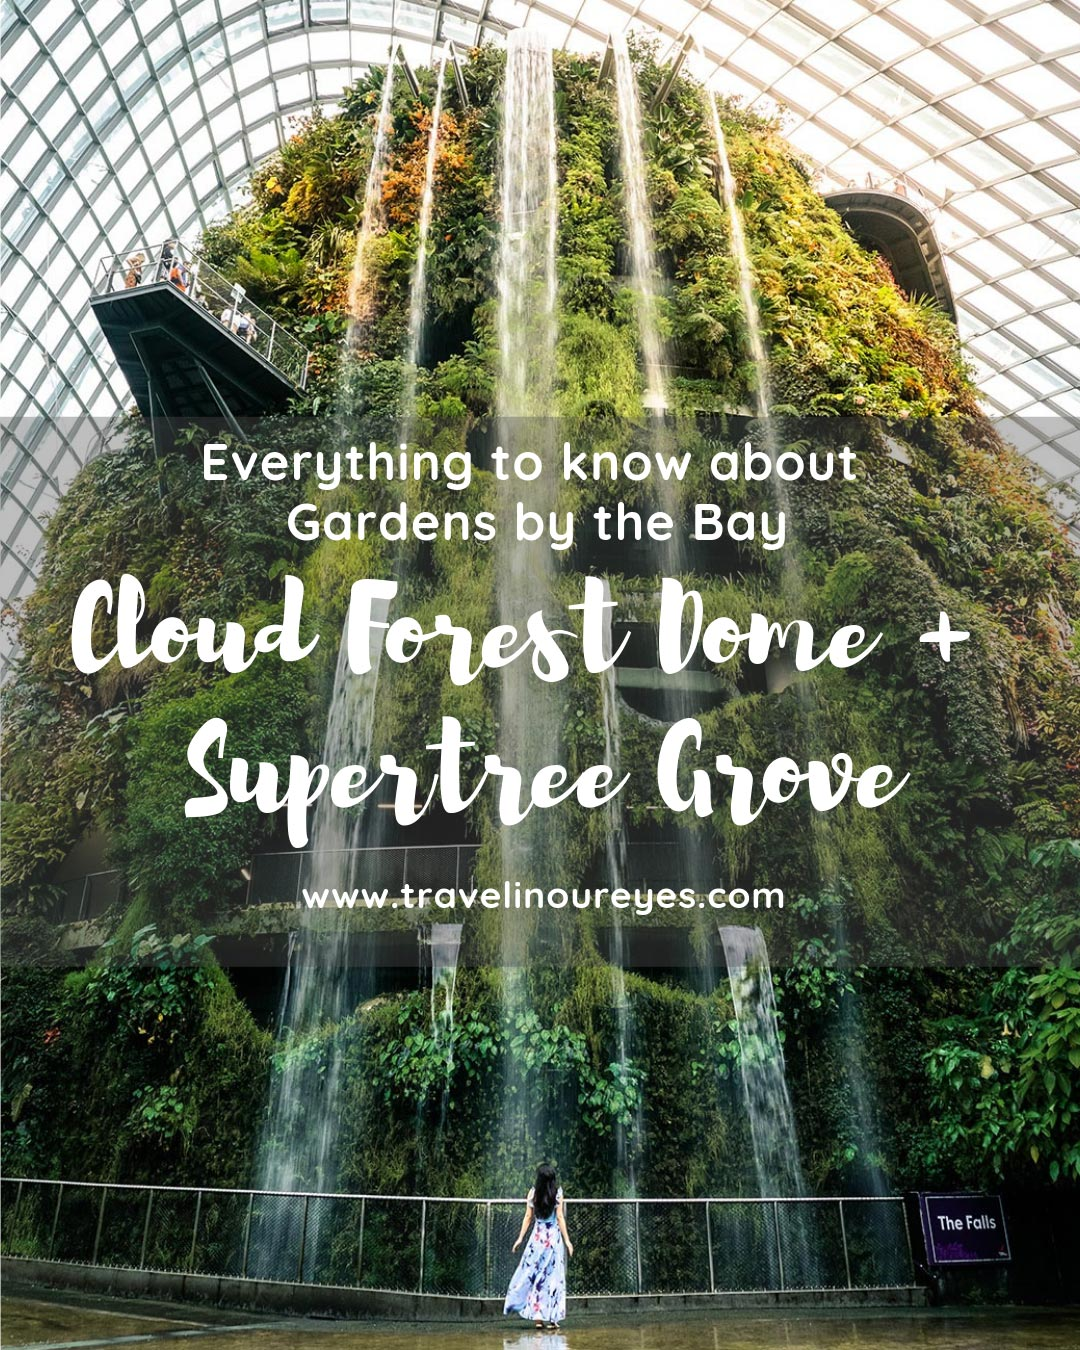 Gardens by the Bay, Supertree Grove + Cloud Forest Dome